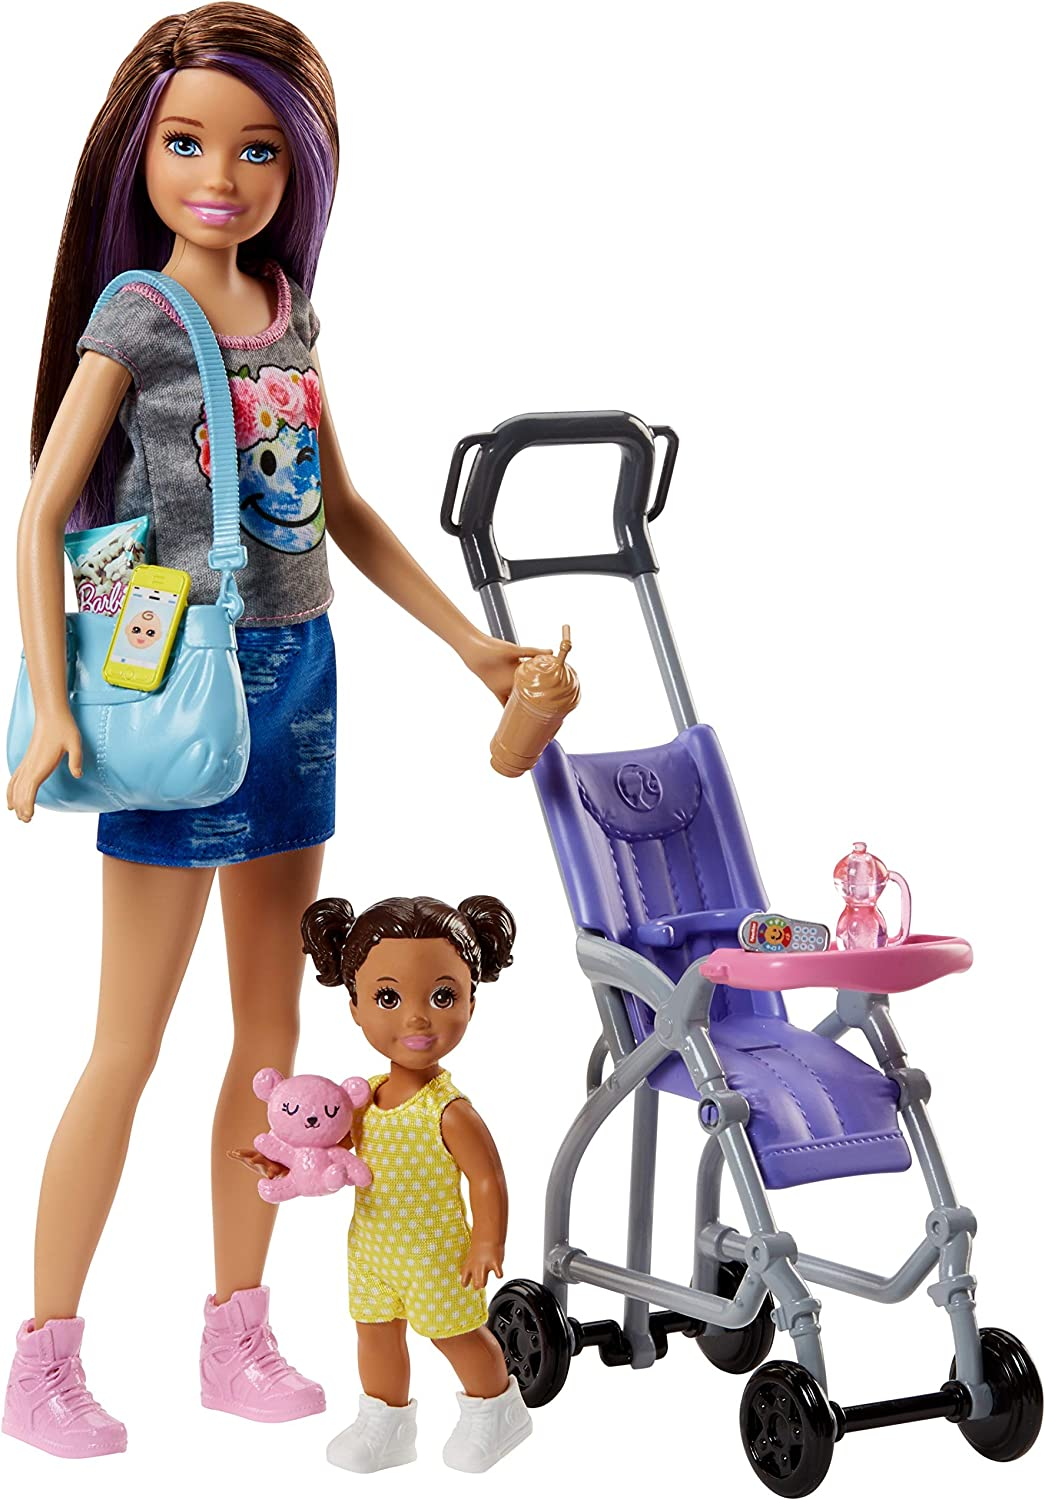 Barbie Babysitters Inc. Doll and Playset Muñeca Skipper hermana, niñera de paseo, multicolor (Mattel FJB00)